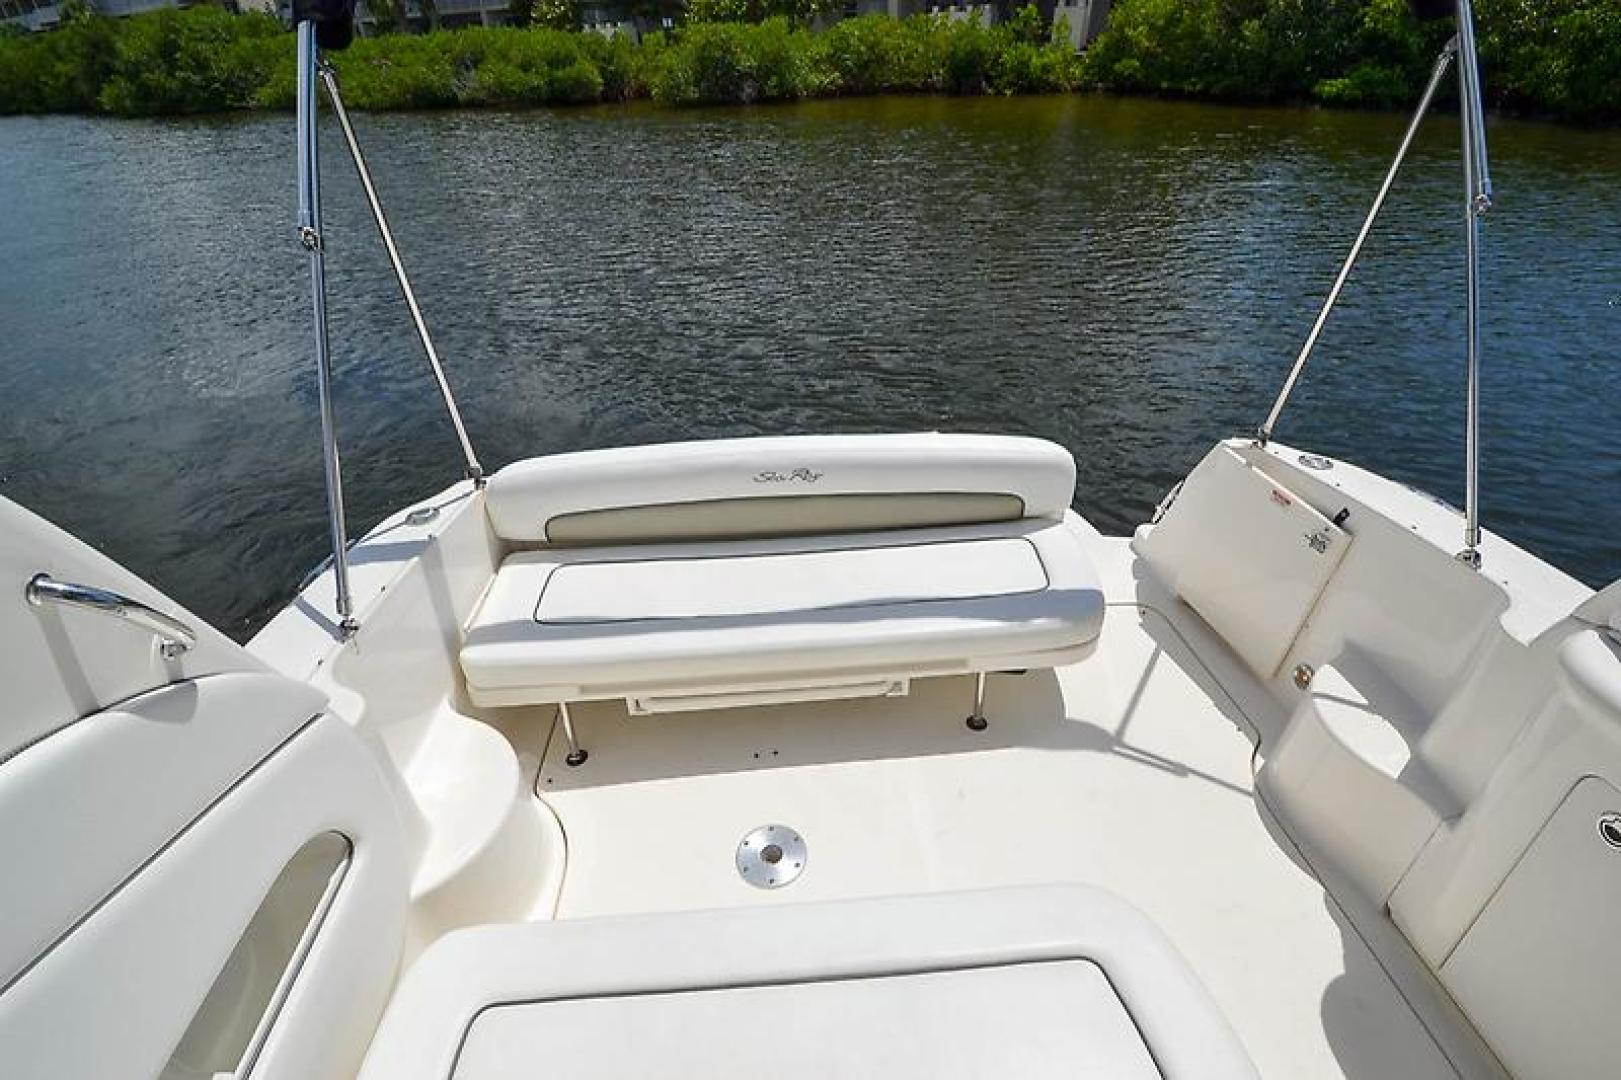 2006 Sea Ray 300 Sundancer-28-2.jpg